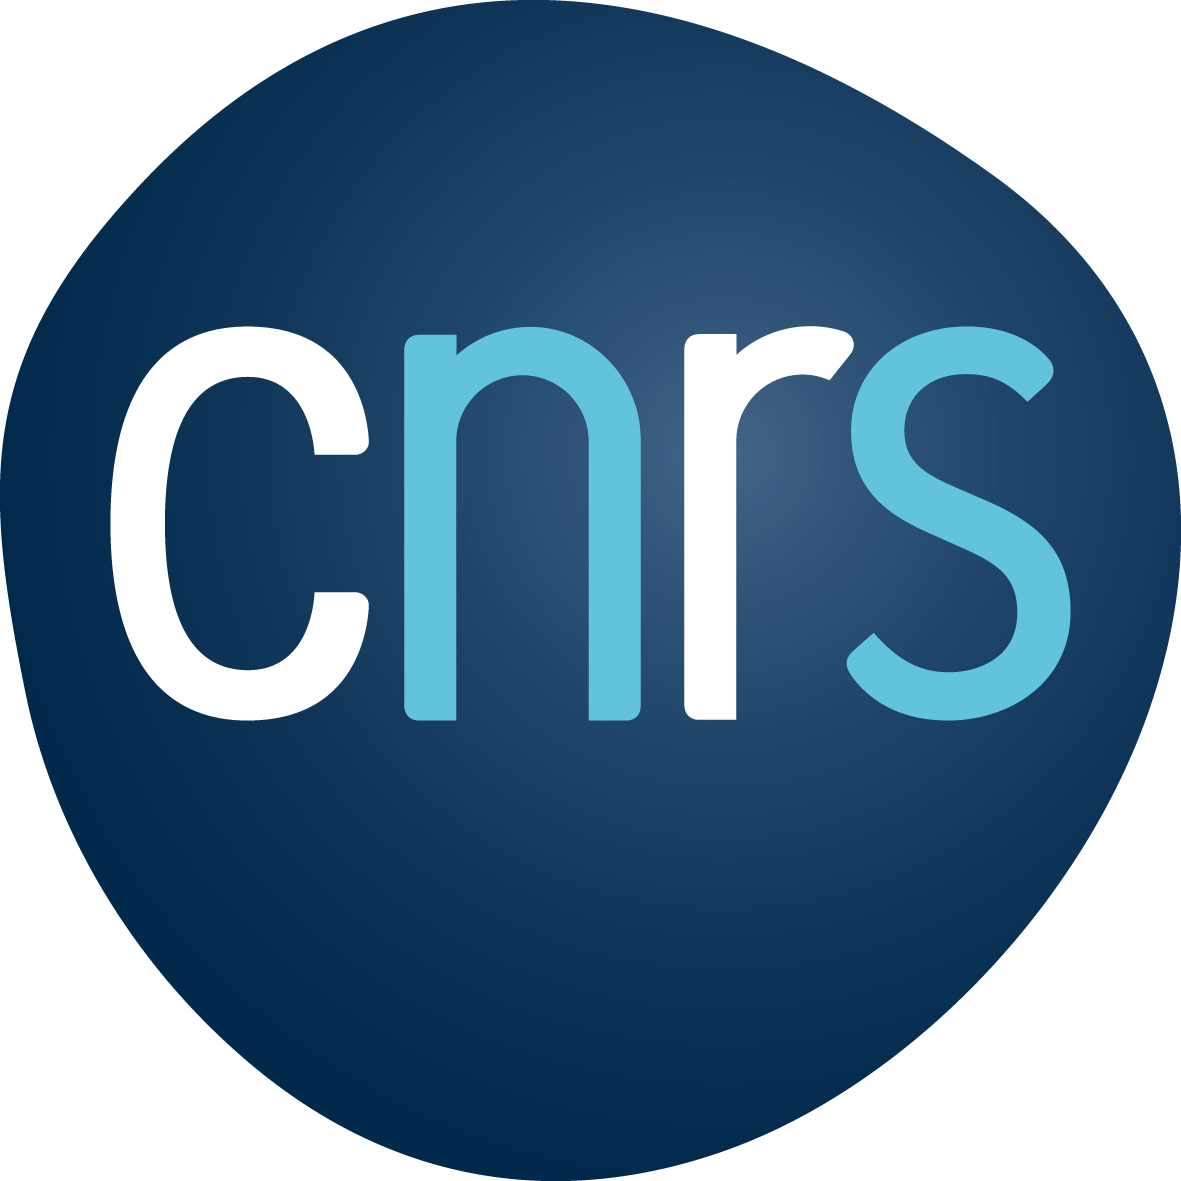 Le Centre National de la Recherche Scientifique (CNRS) – France